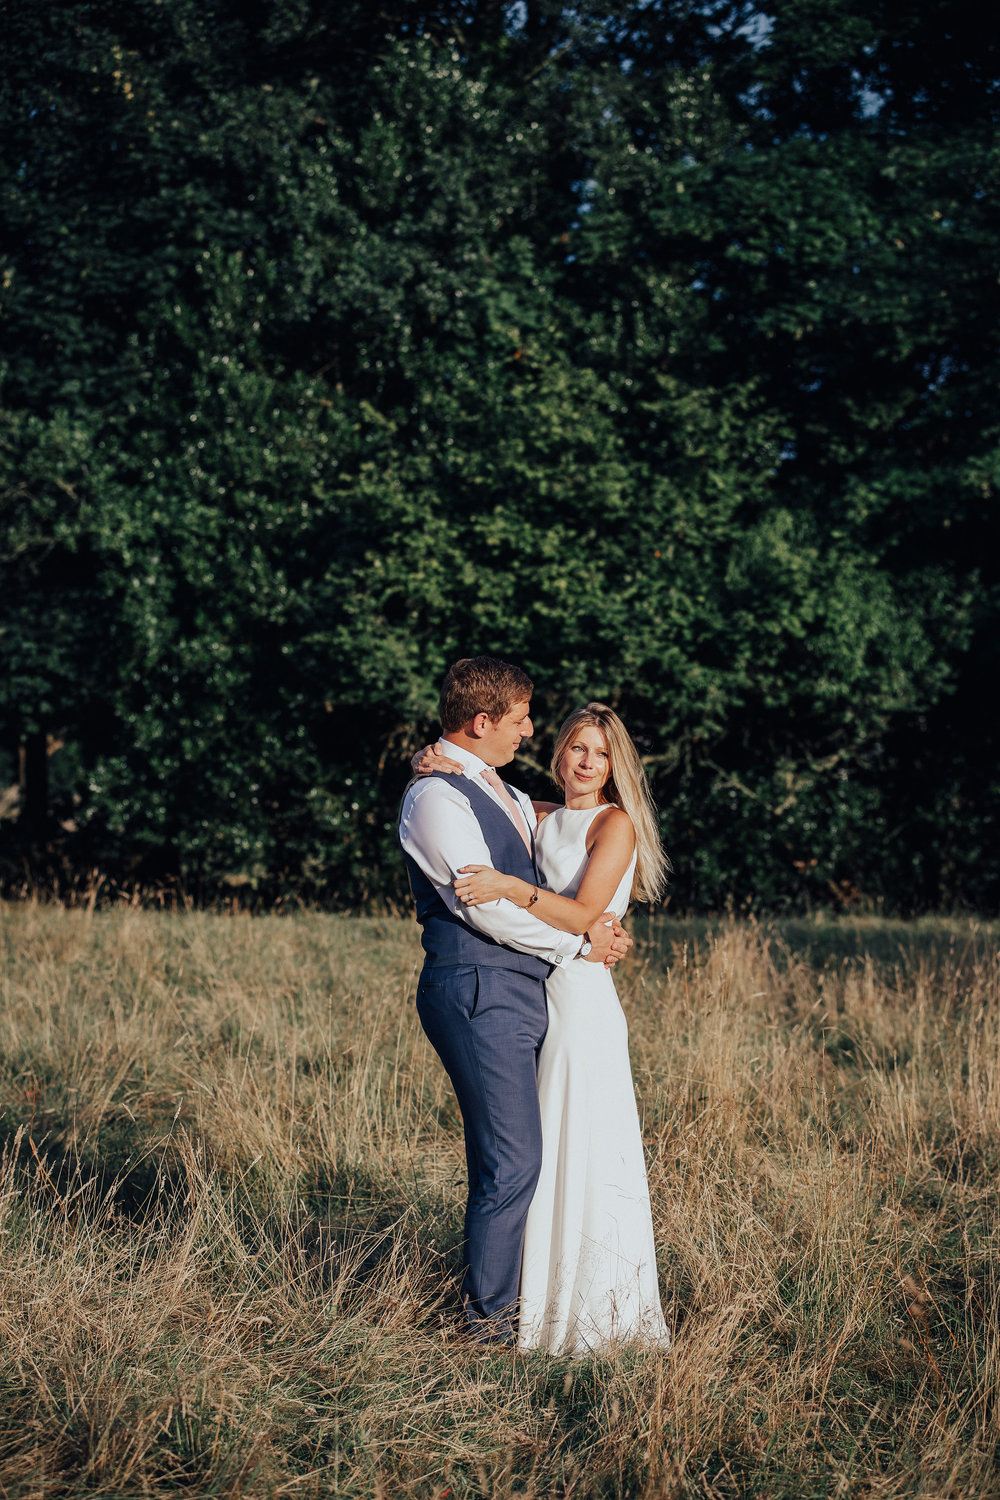 PJ_PHILLIPS_PHOTOGRAPHY_YORKSHIRE_WEDDING_PHOTOGRAPHER_HENRY_SOPHIE_SPORTSMANS_ARMS_PATELEY_BRIDGE_106.jpg